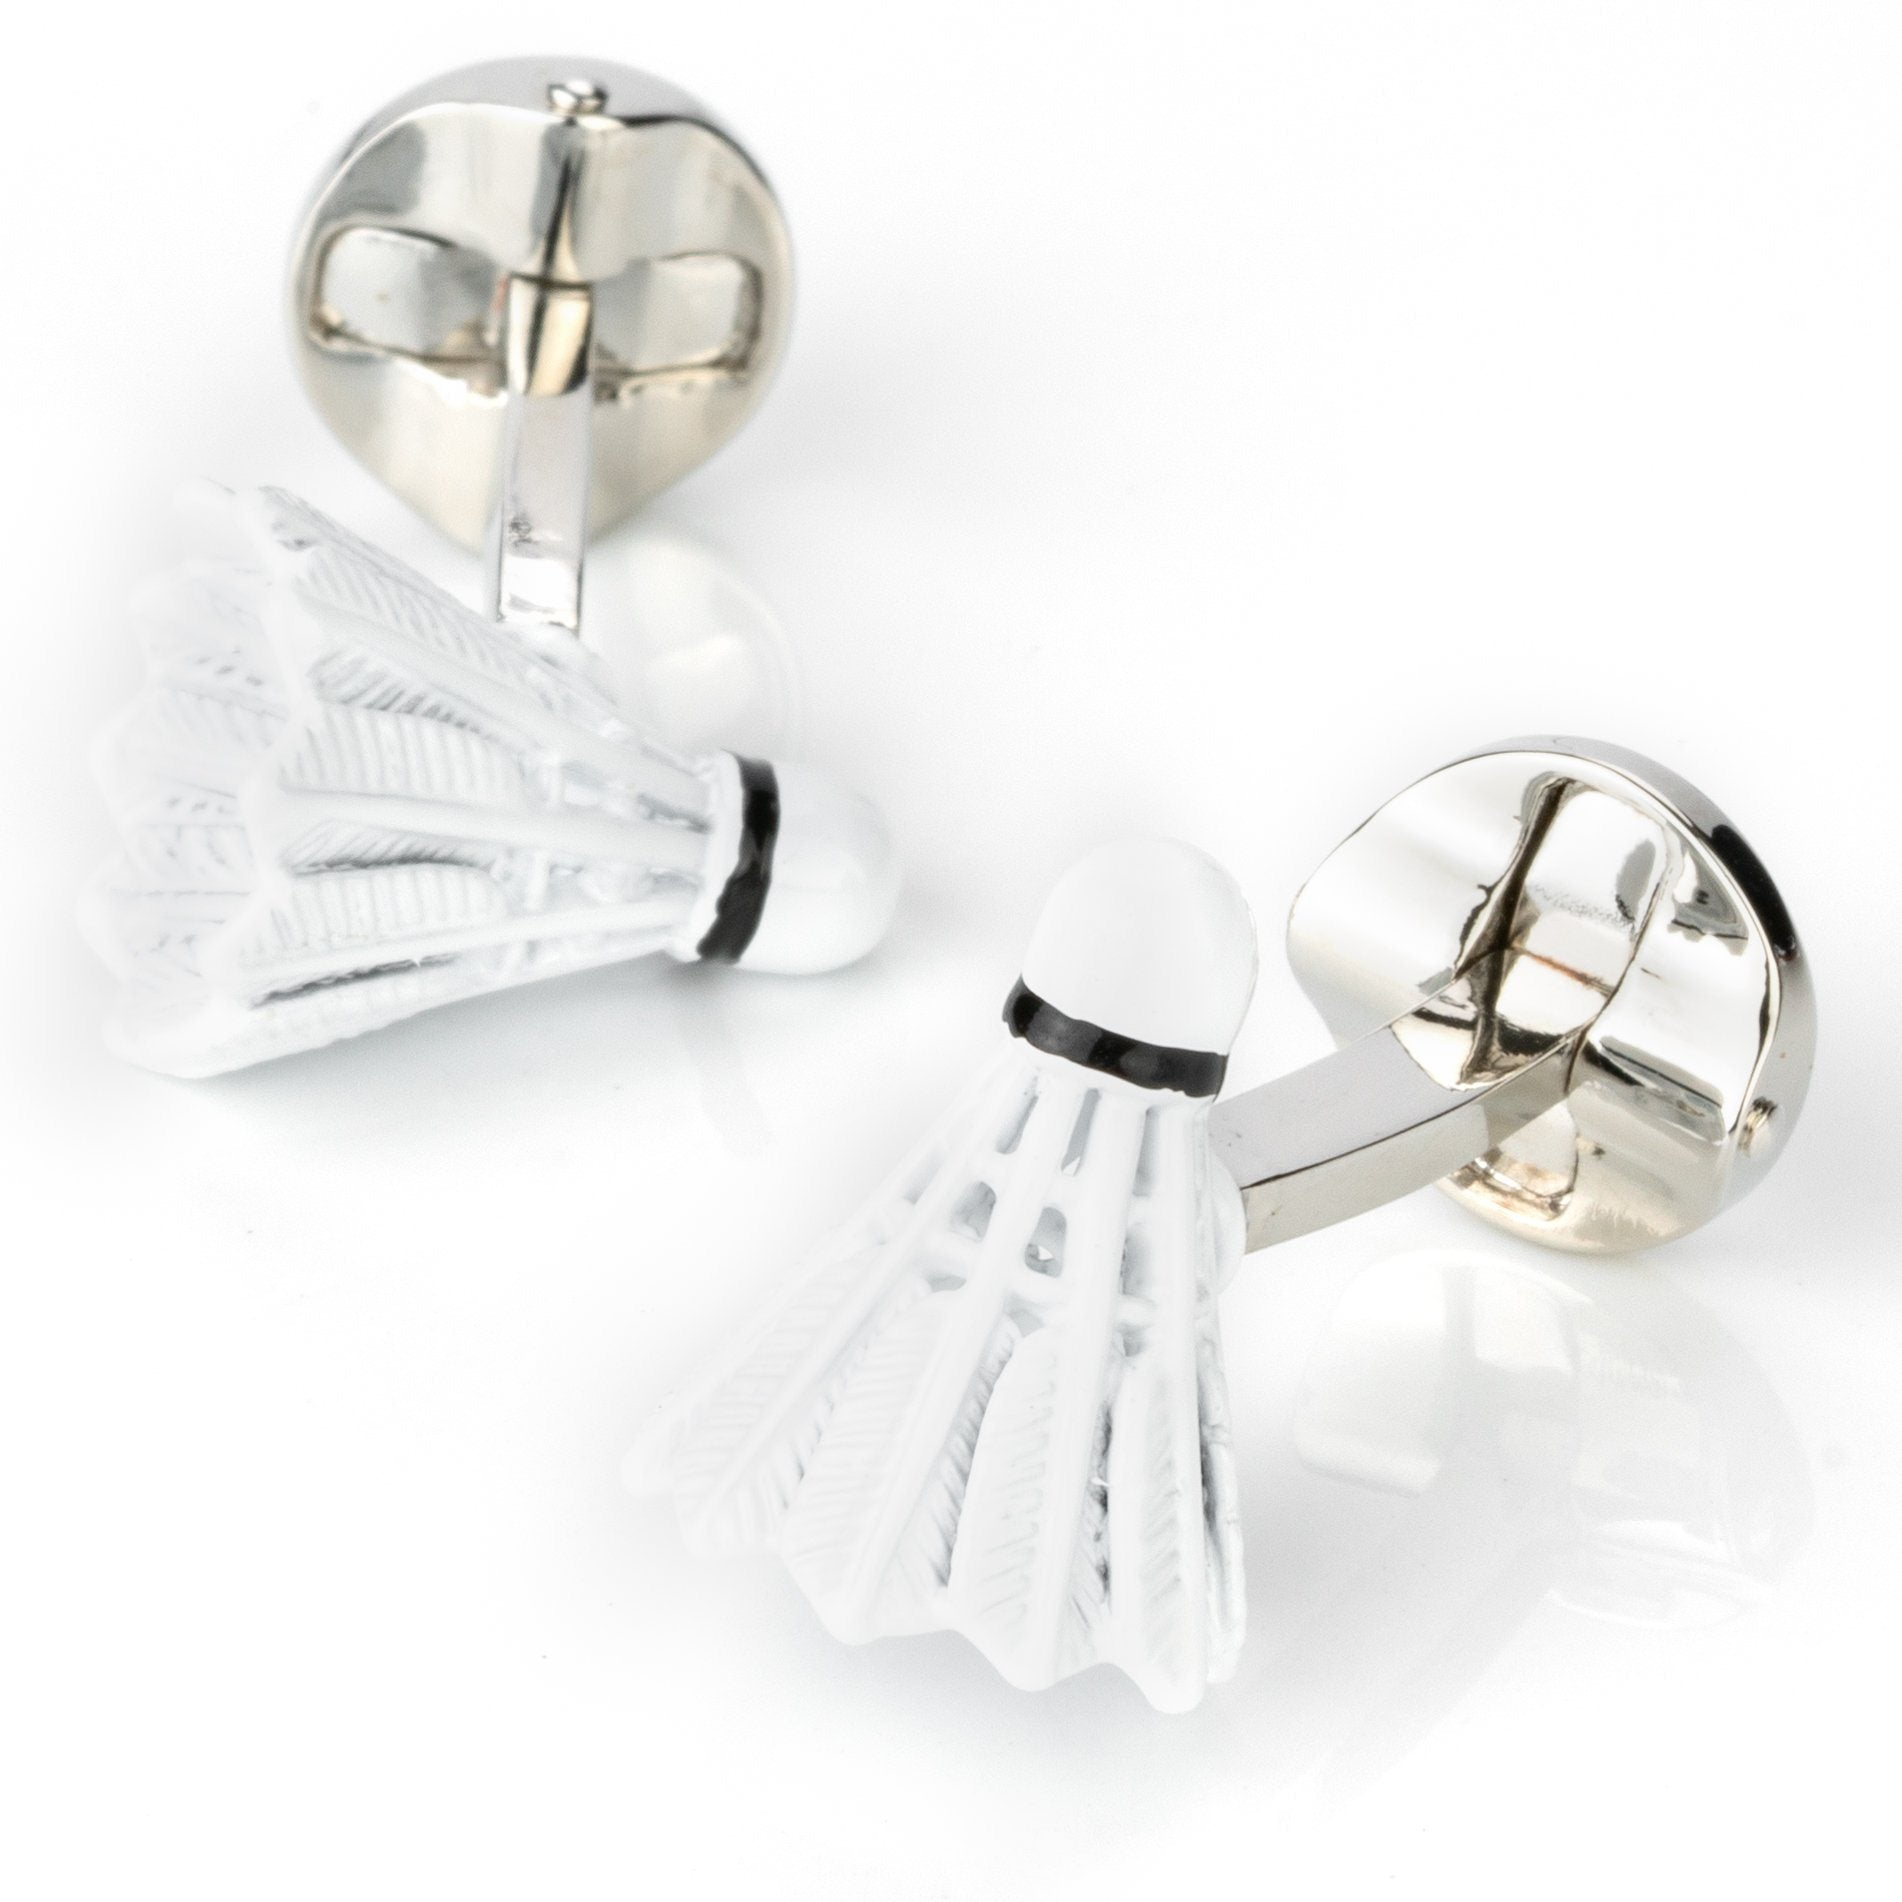 Badminton Shuttlecock Cufflinks , Novelty Cufflinks , CL4328 , Mens Cufflinks , Cufflinks , Cuffed , Clinks , Clinks Australia